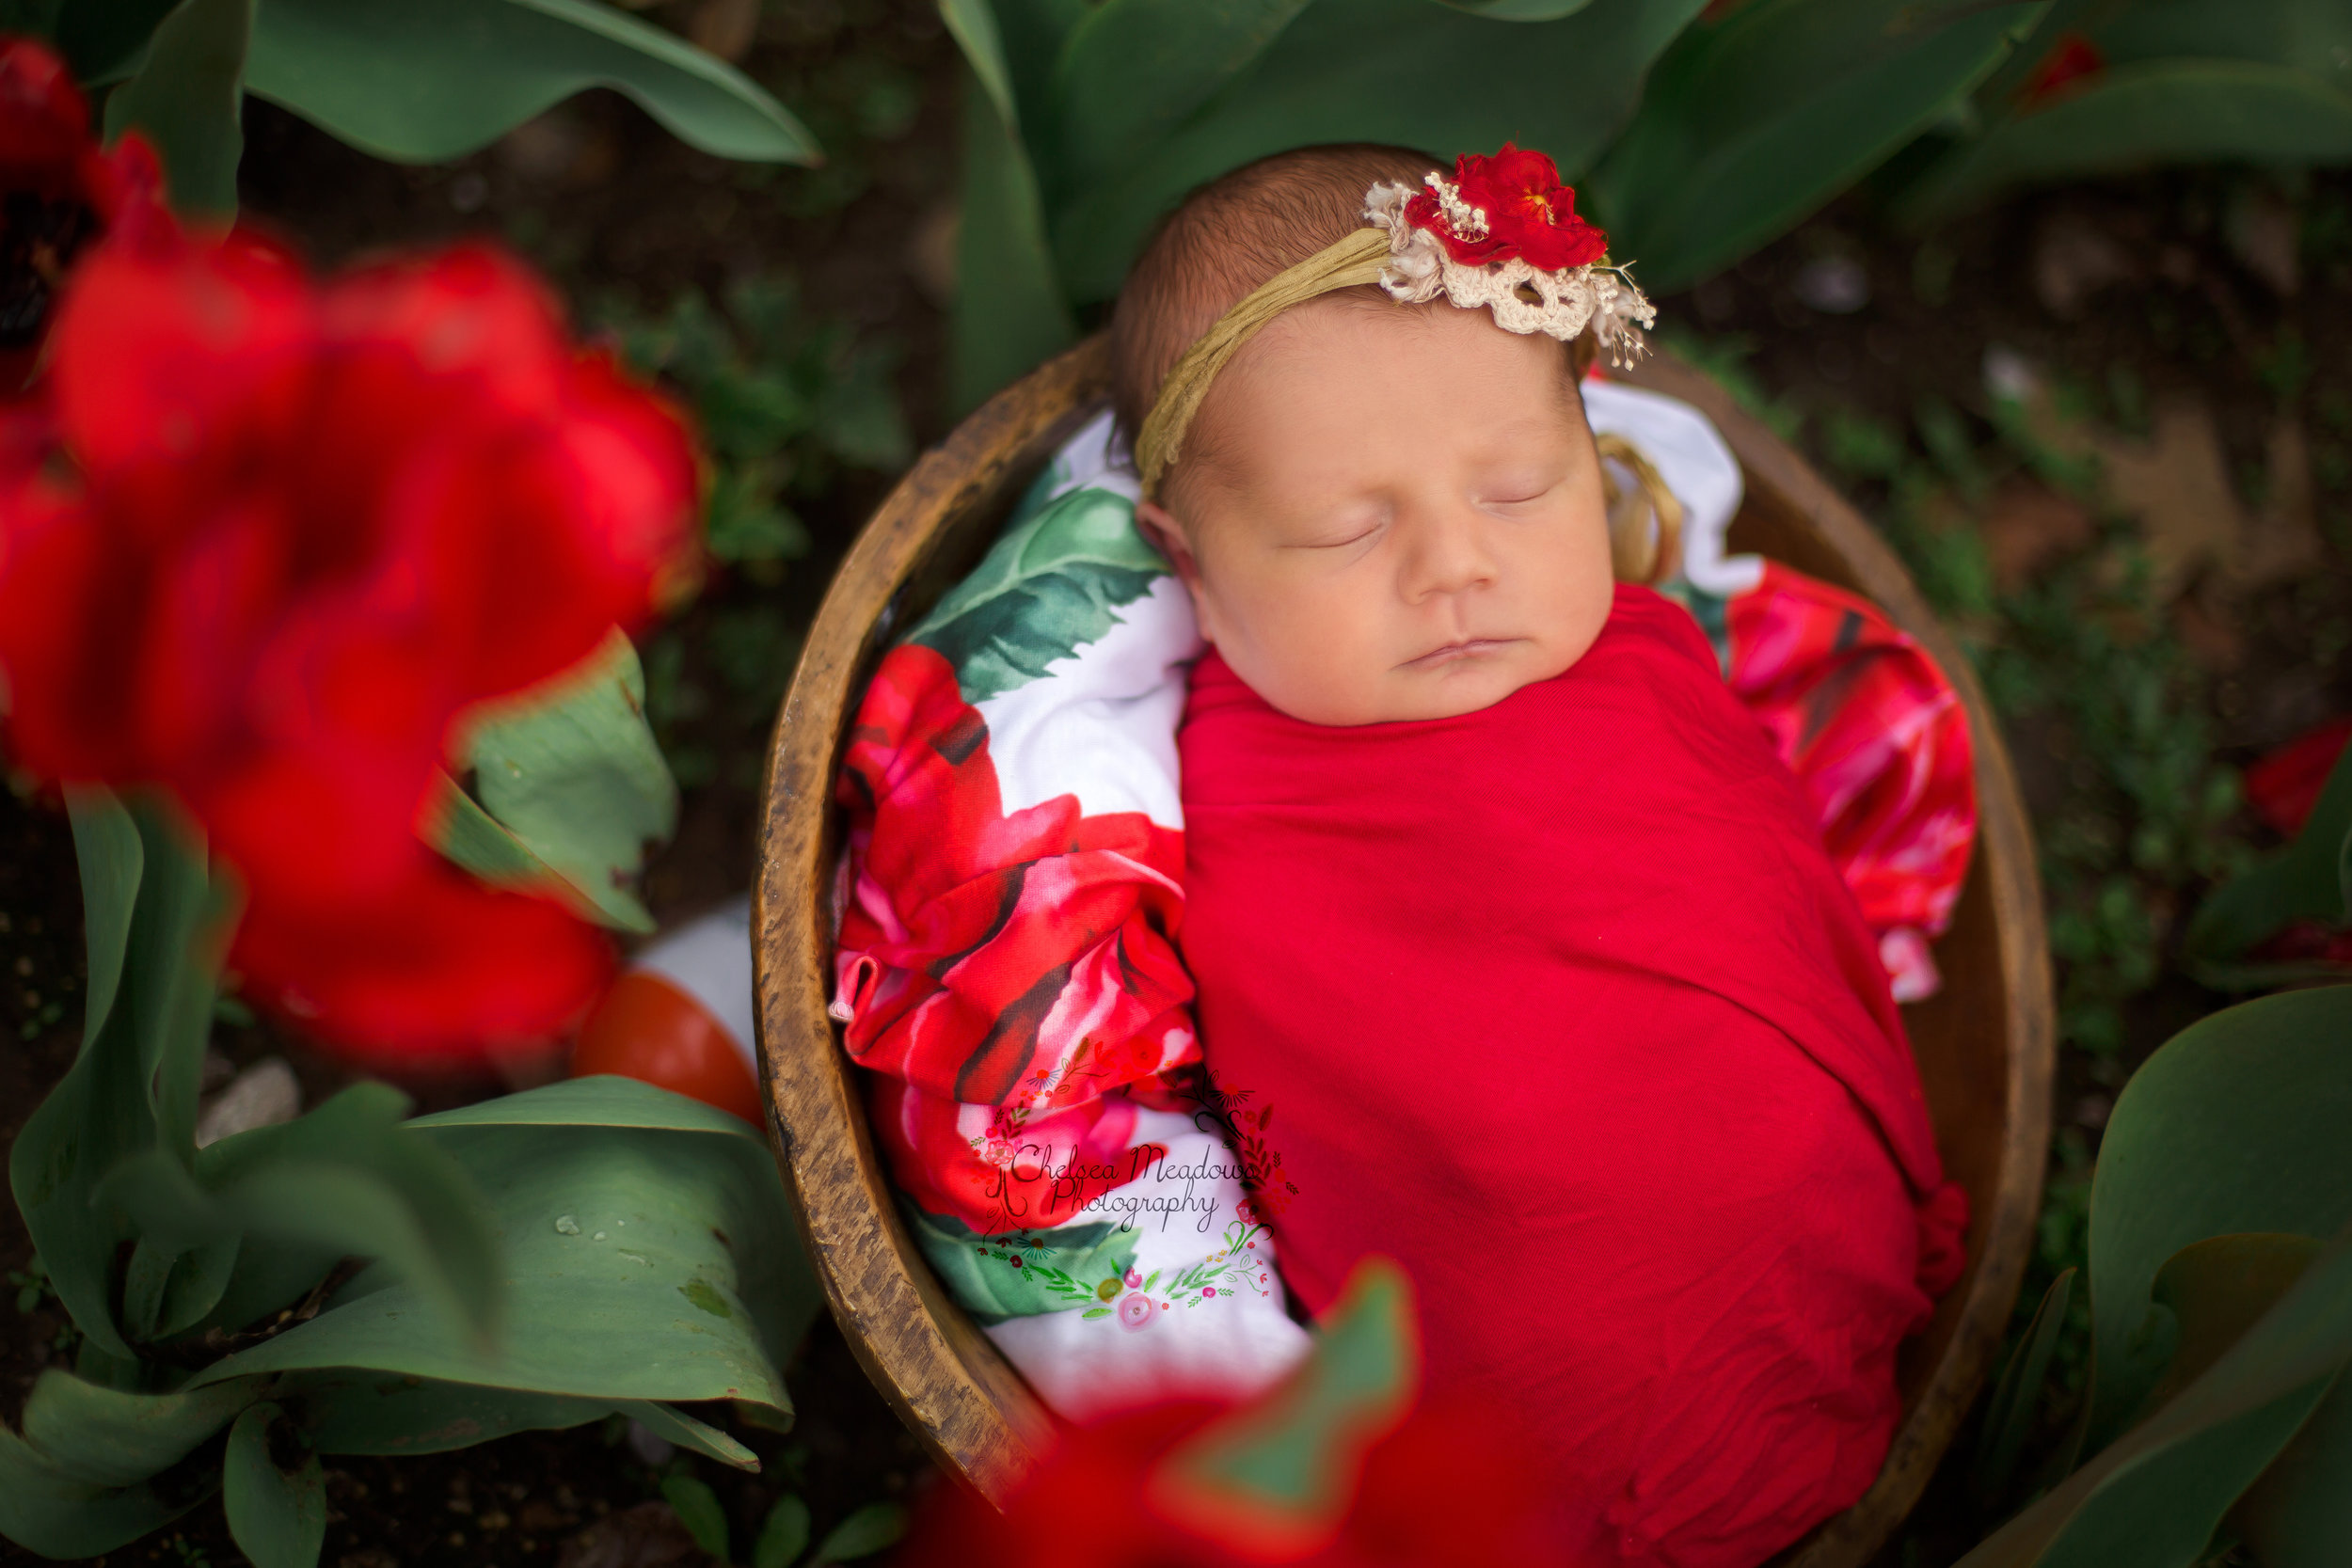 Marley Newborn Photos - Nashville Newborn Photographer - Chelsea Meadows Photography (22)_edited-1.jpg